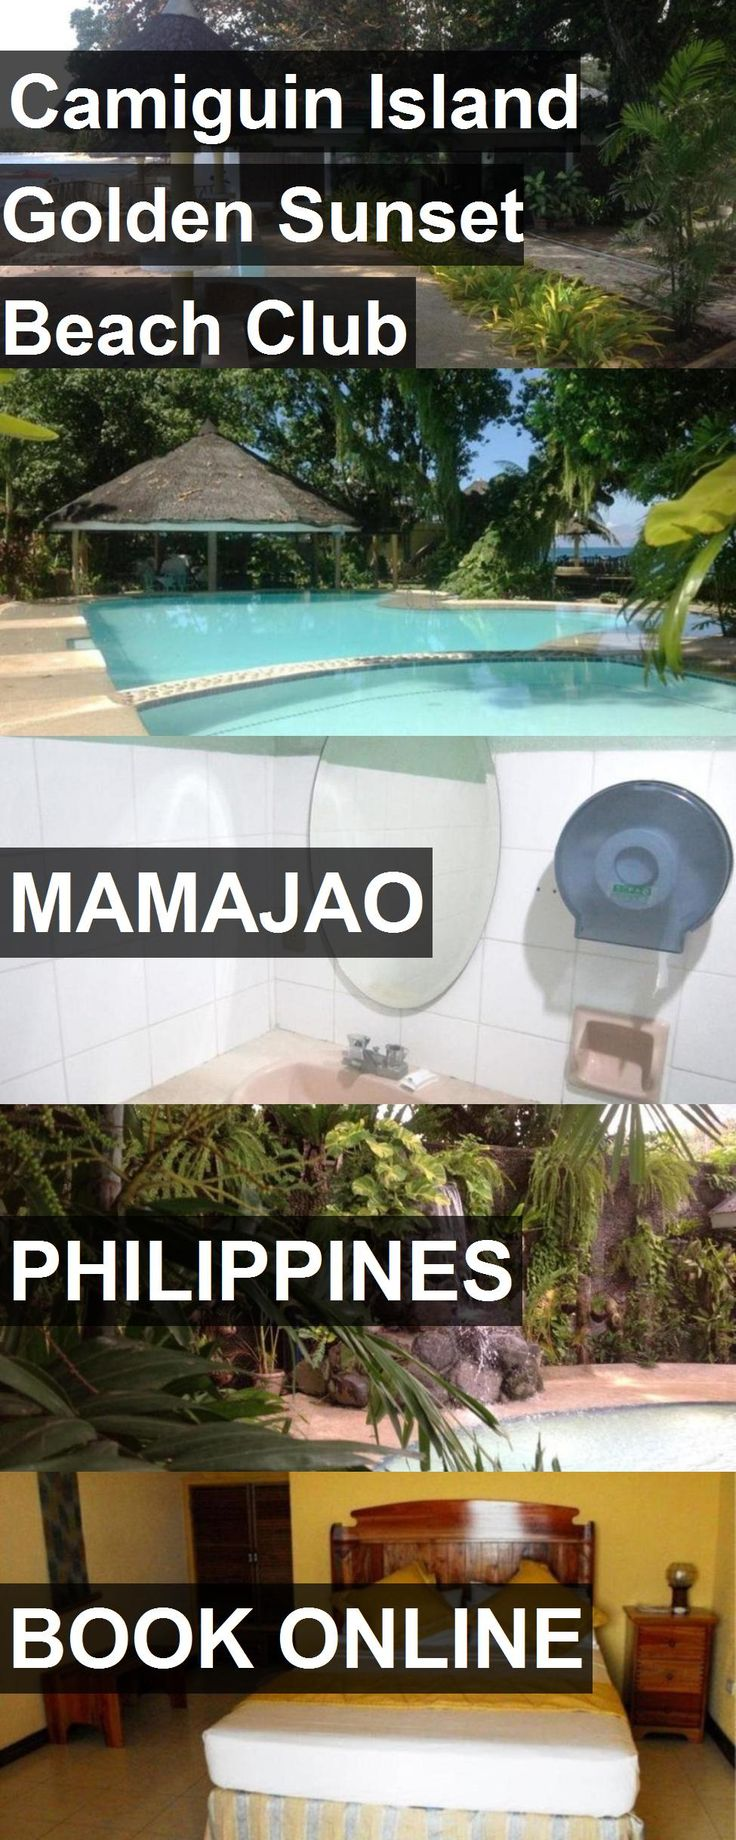 Hotel Camiguin Island Golden Sunset Beach Club in Mamajao, Philippines. For more information, photos, reviews and best prices please follow the link. #Philippines #Mamajao #travel #vacation #hotel